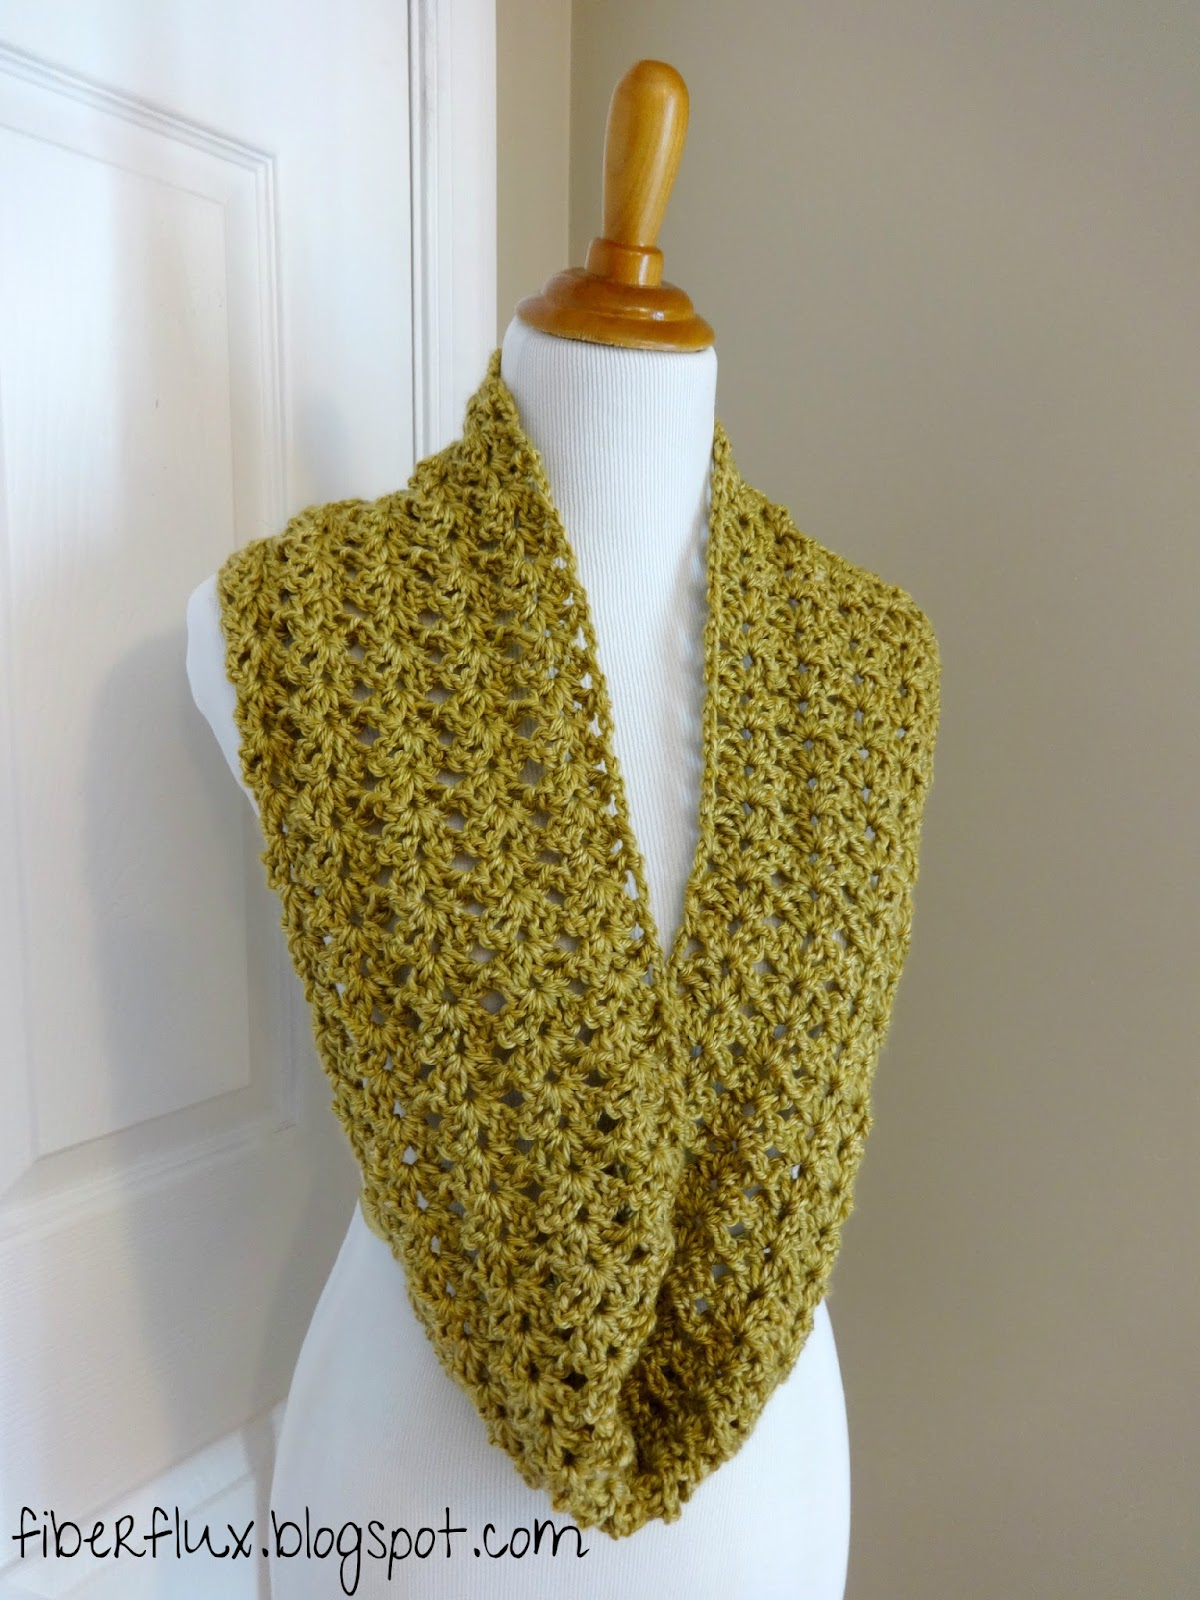 Crochet Pattern For Infinity Scarf With Buttons : Fiber Flux: Free Crochet Pattern...Gold Leaf Infinity Scarf!